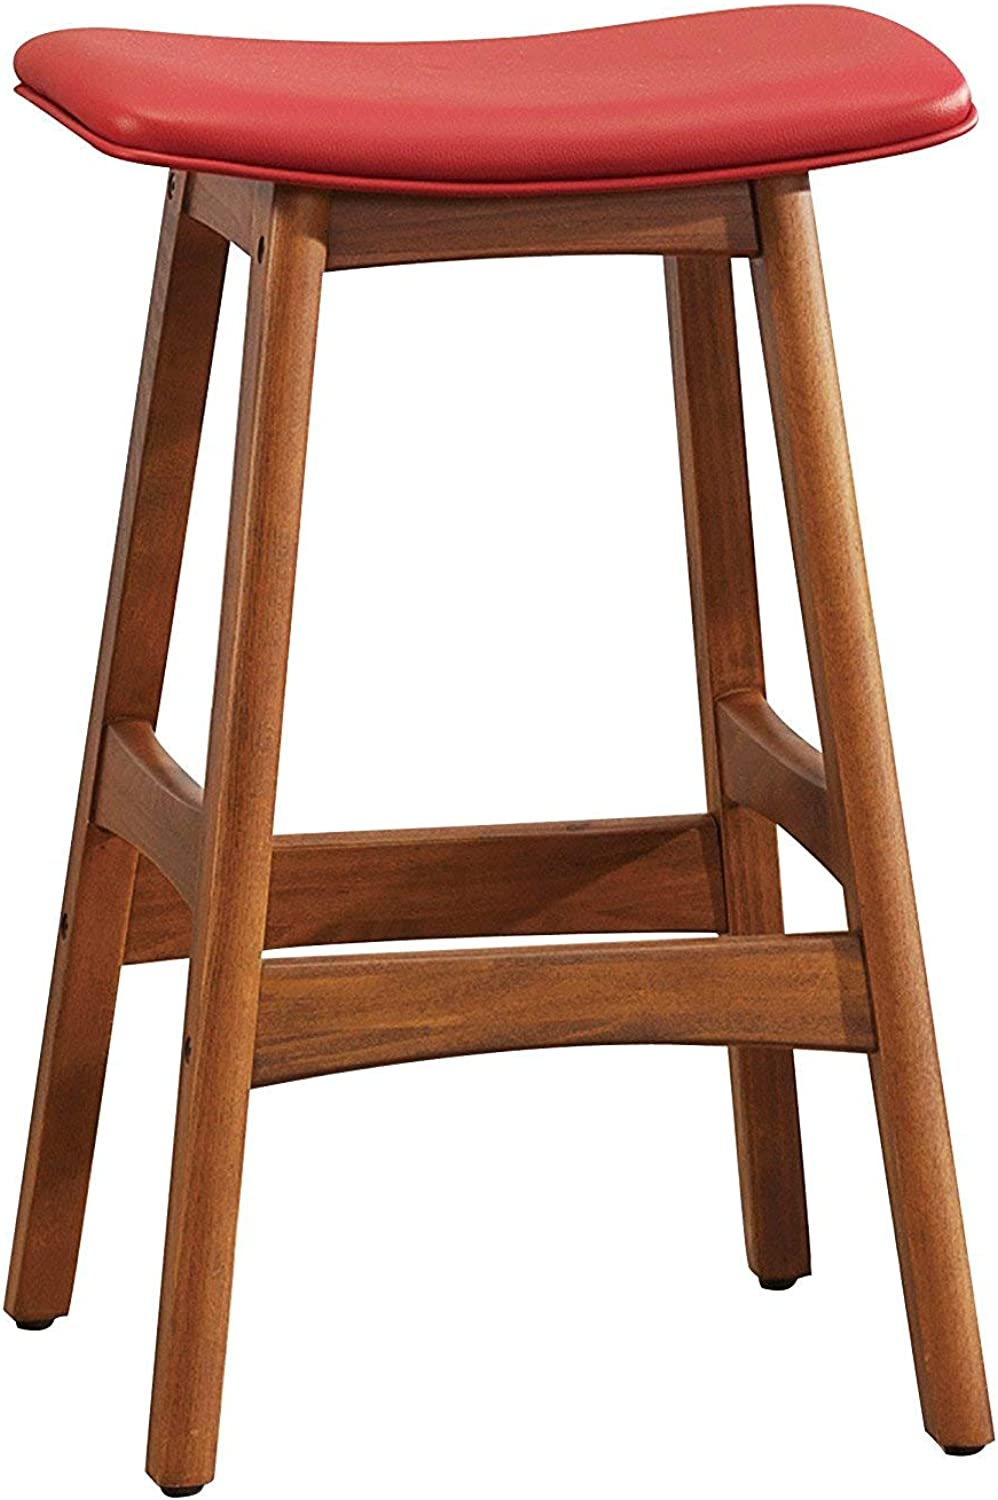 Benzara BM190164 Leather Upholstered Wooden Counter Height Stool, Red and Brown